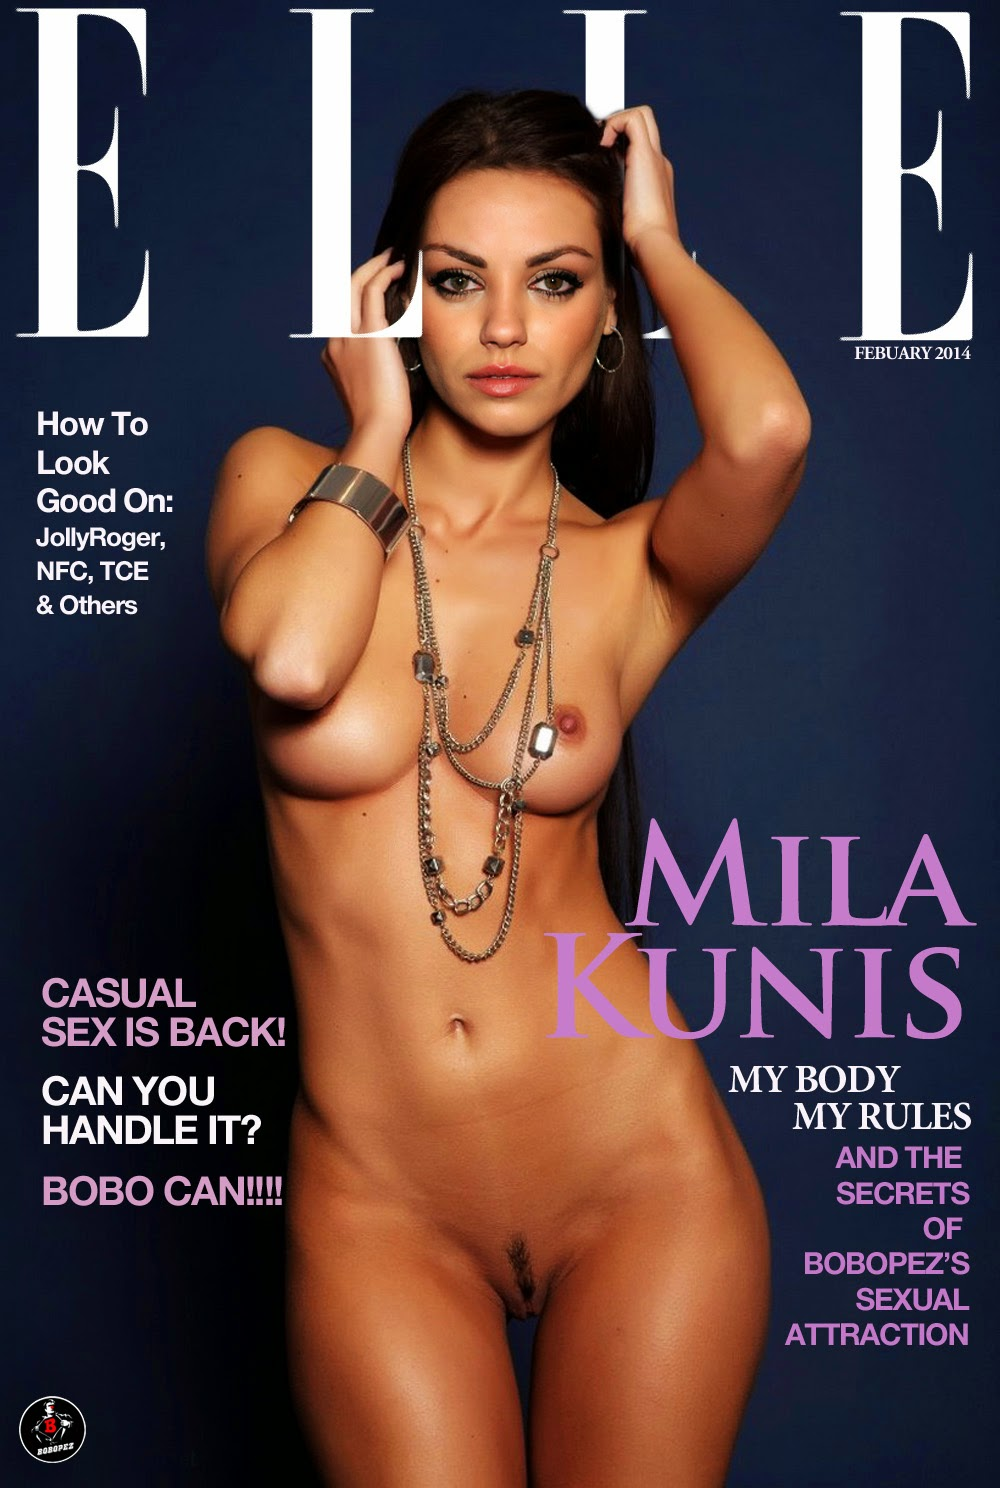 Mila kunis nude uncensored pics above told